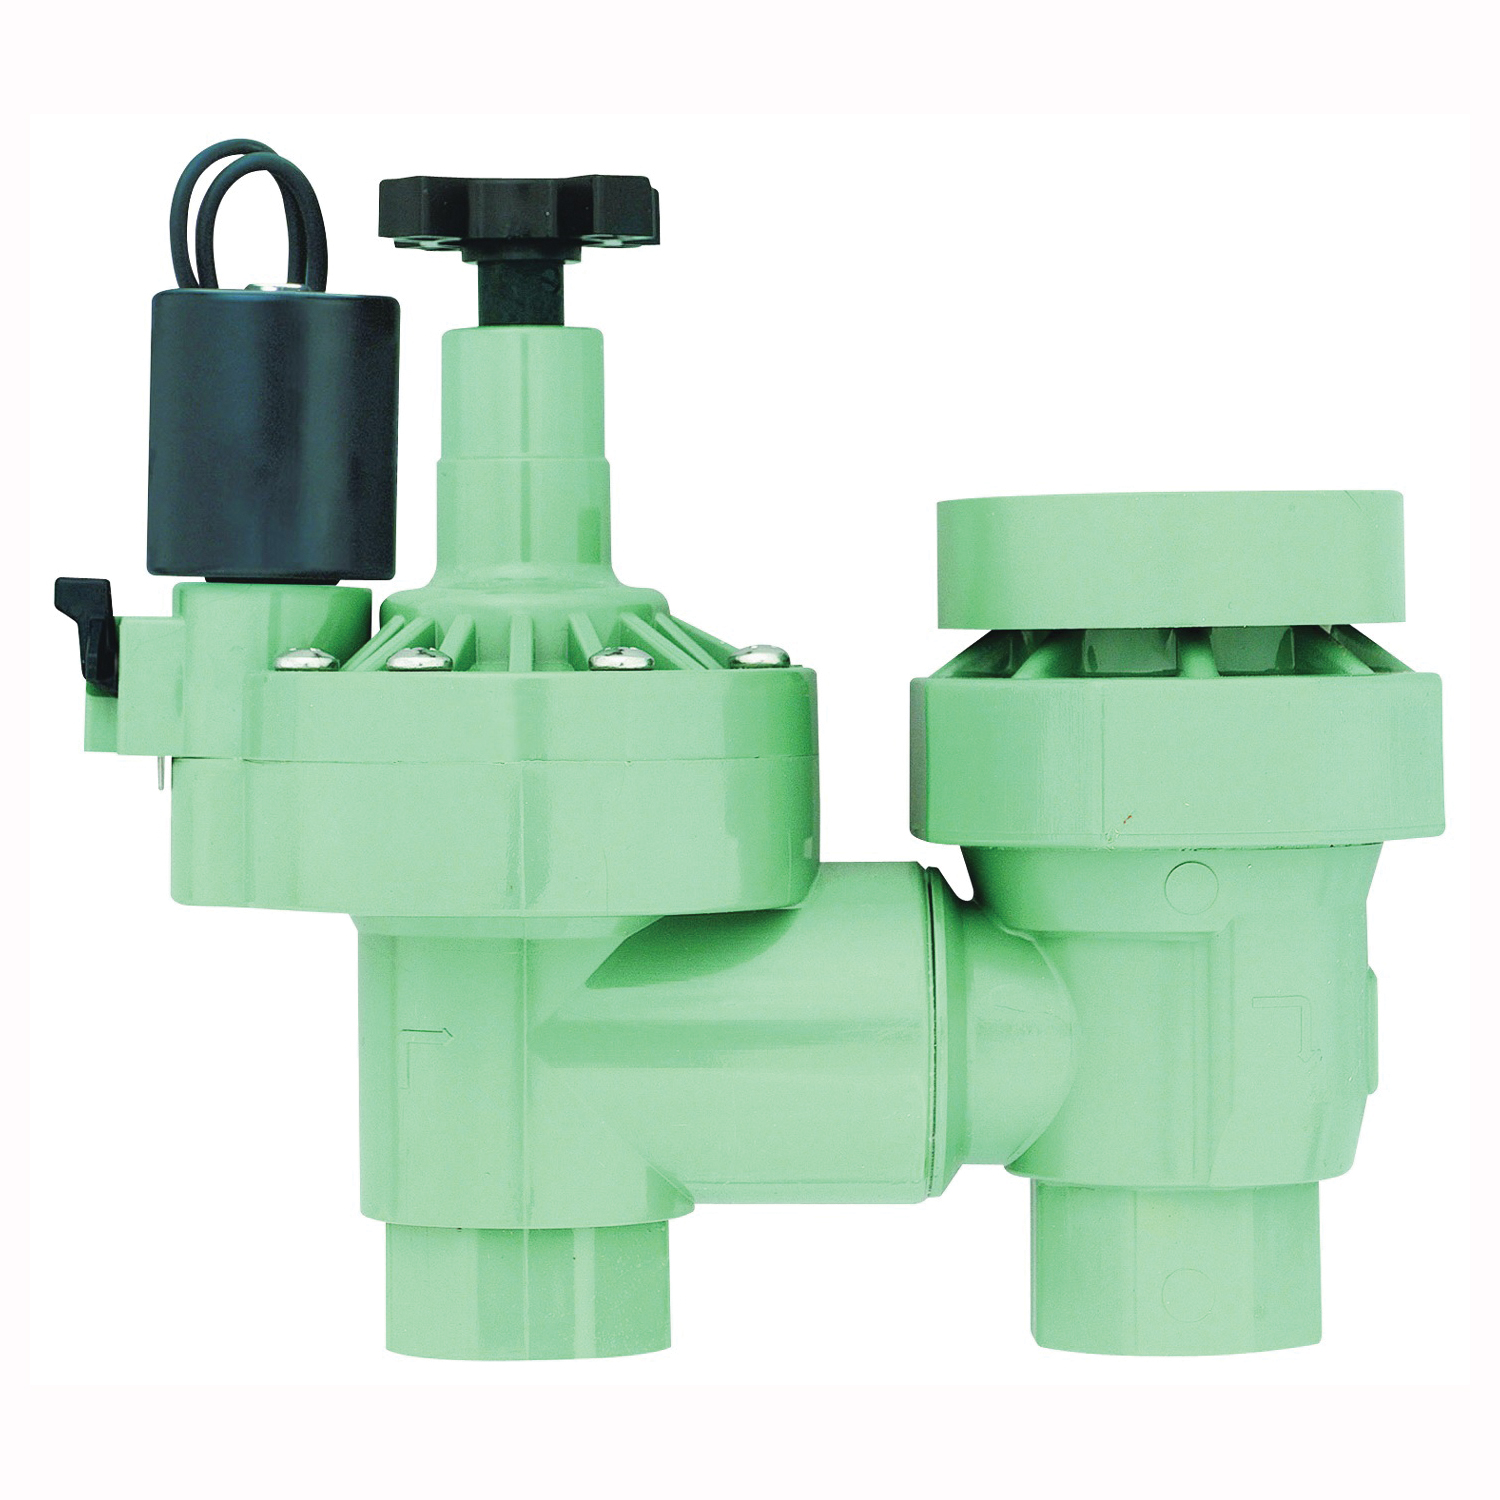 Picture of Orbit 57624 Anti-Siphon Valve, 1 in, FNPT, 10 to 125 psi Pressure, 5 to 40 gpm, 24 V, Plastic Body